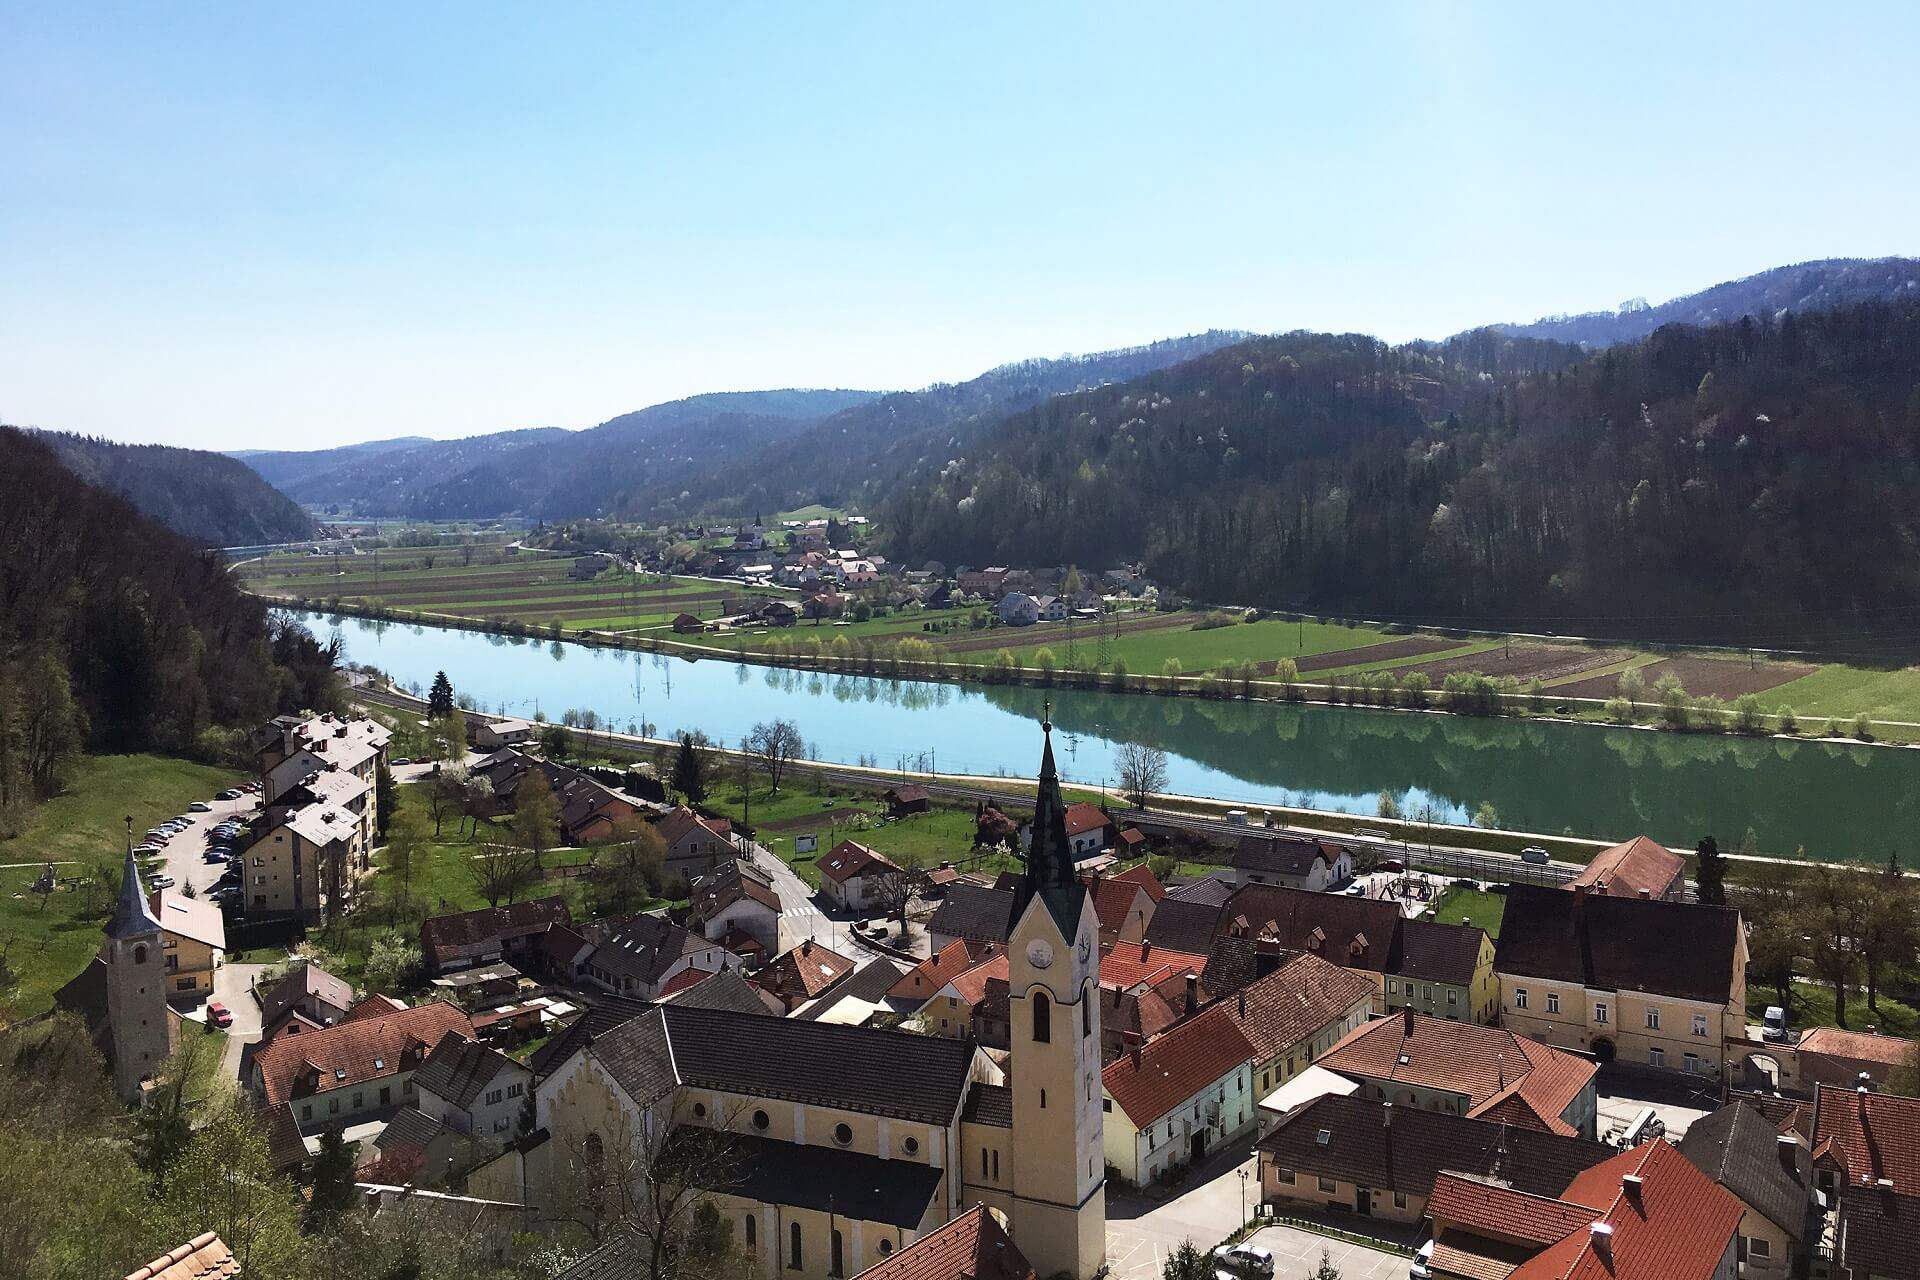 Sevnica, Slovenia hometown of Melania Trump